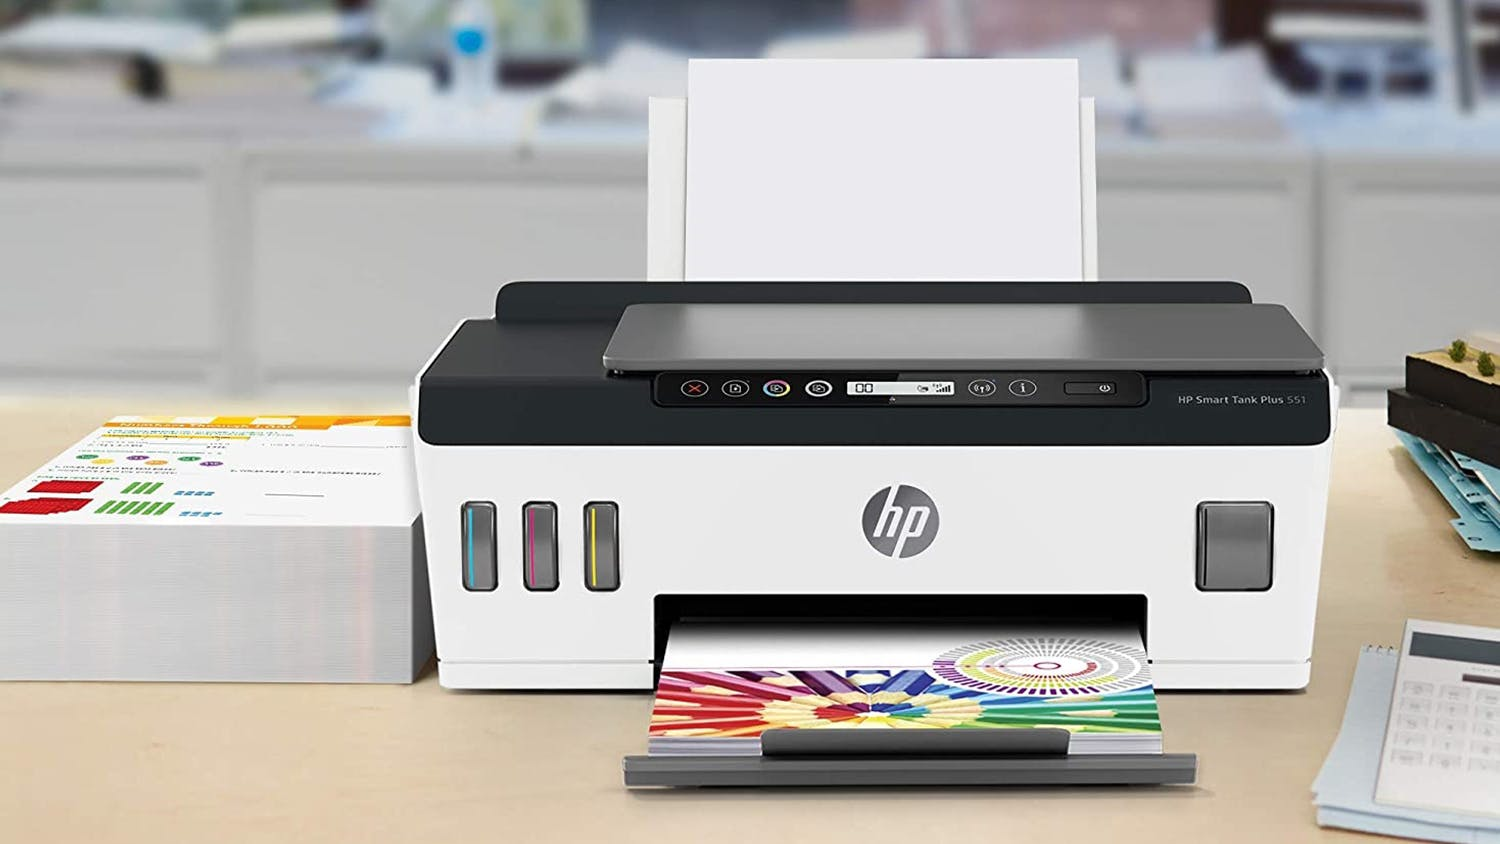 HP Smart Tank Plus 551 All-in-One Printer - White